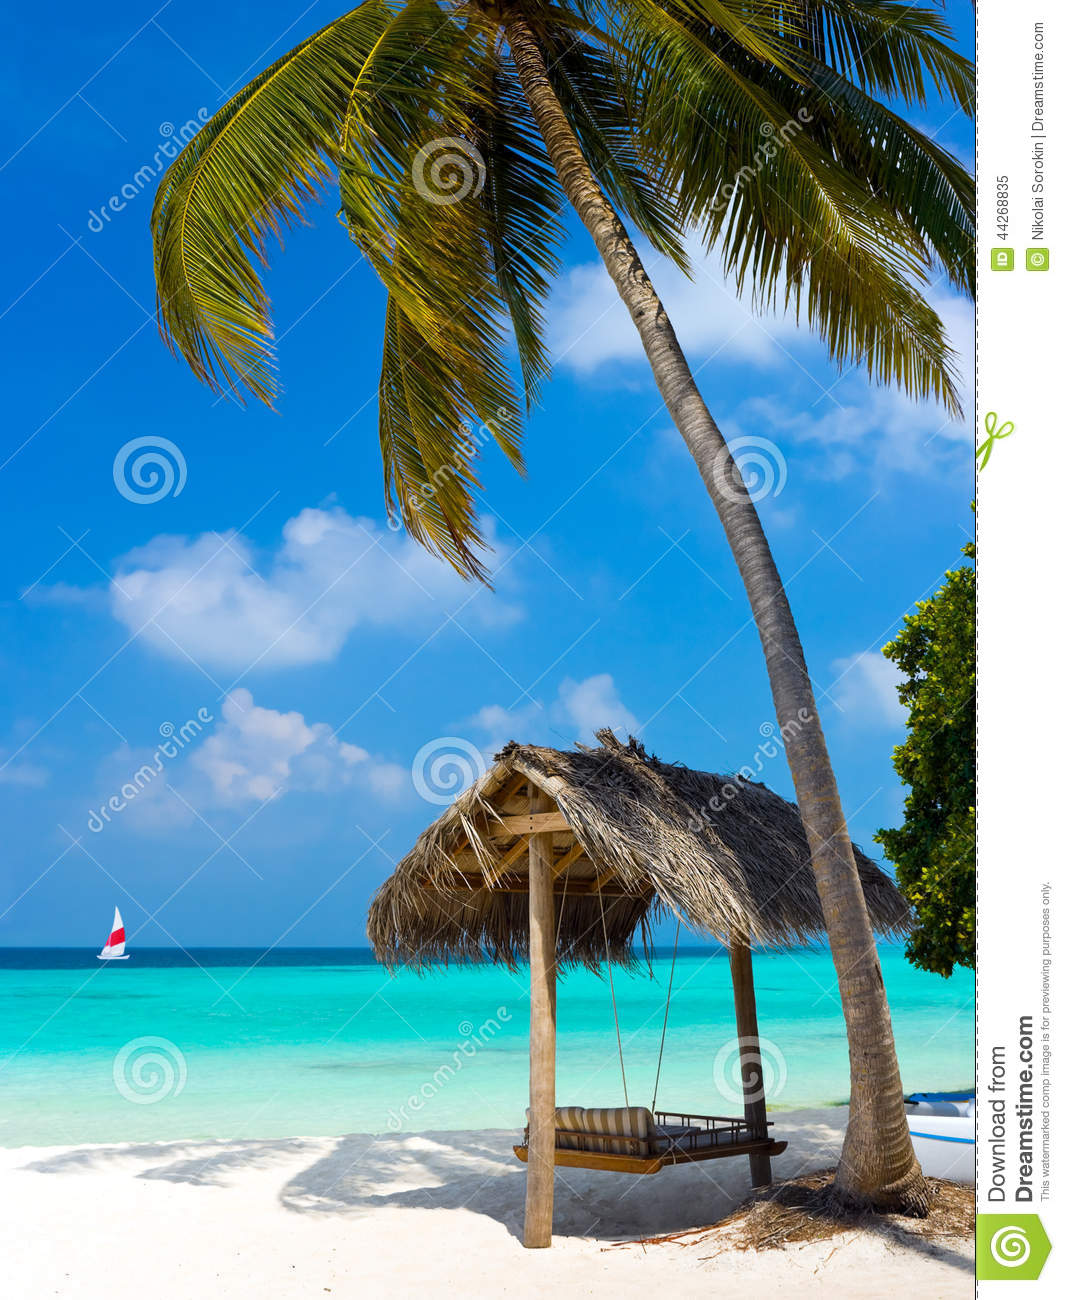 Exotic Beach: Swing On A Tropical Beach Stock Image. Image Of Beach